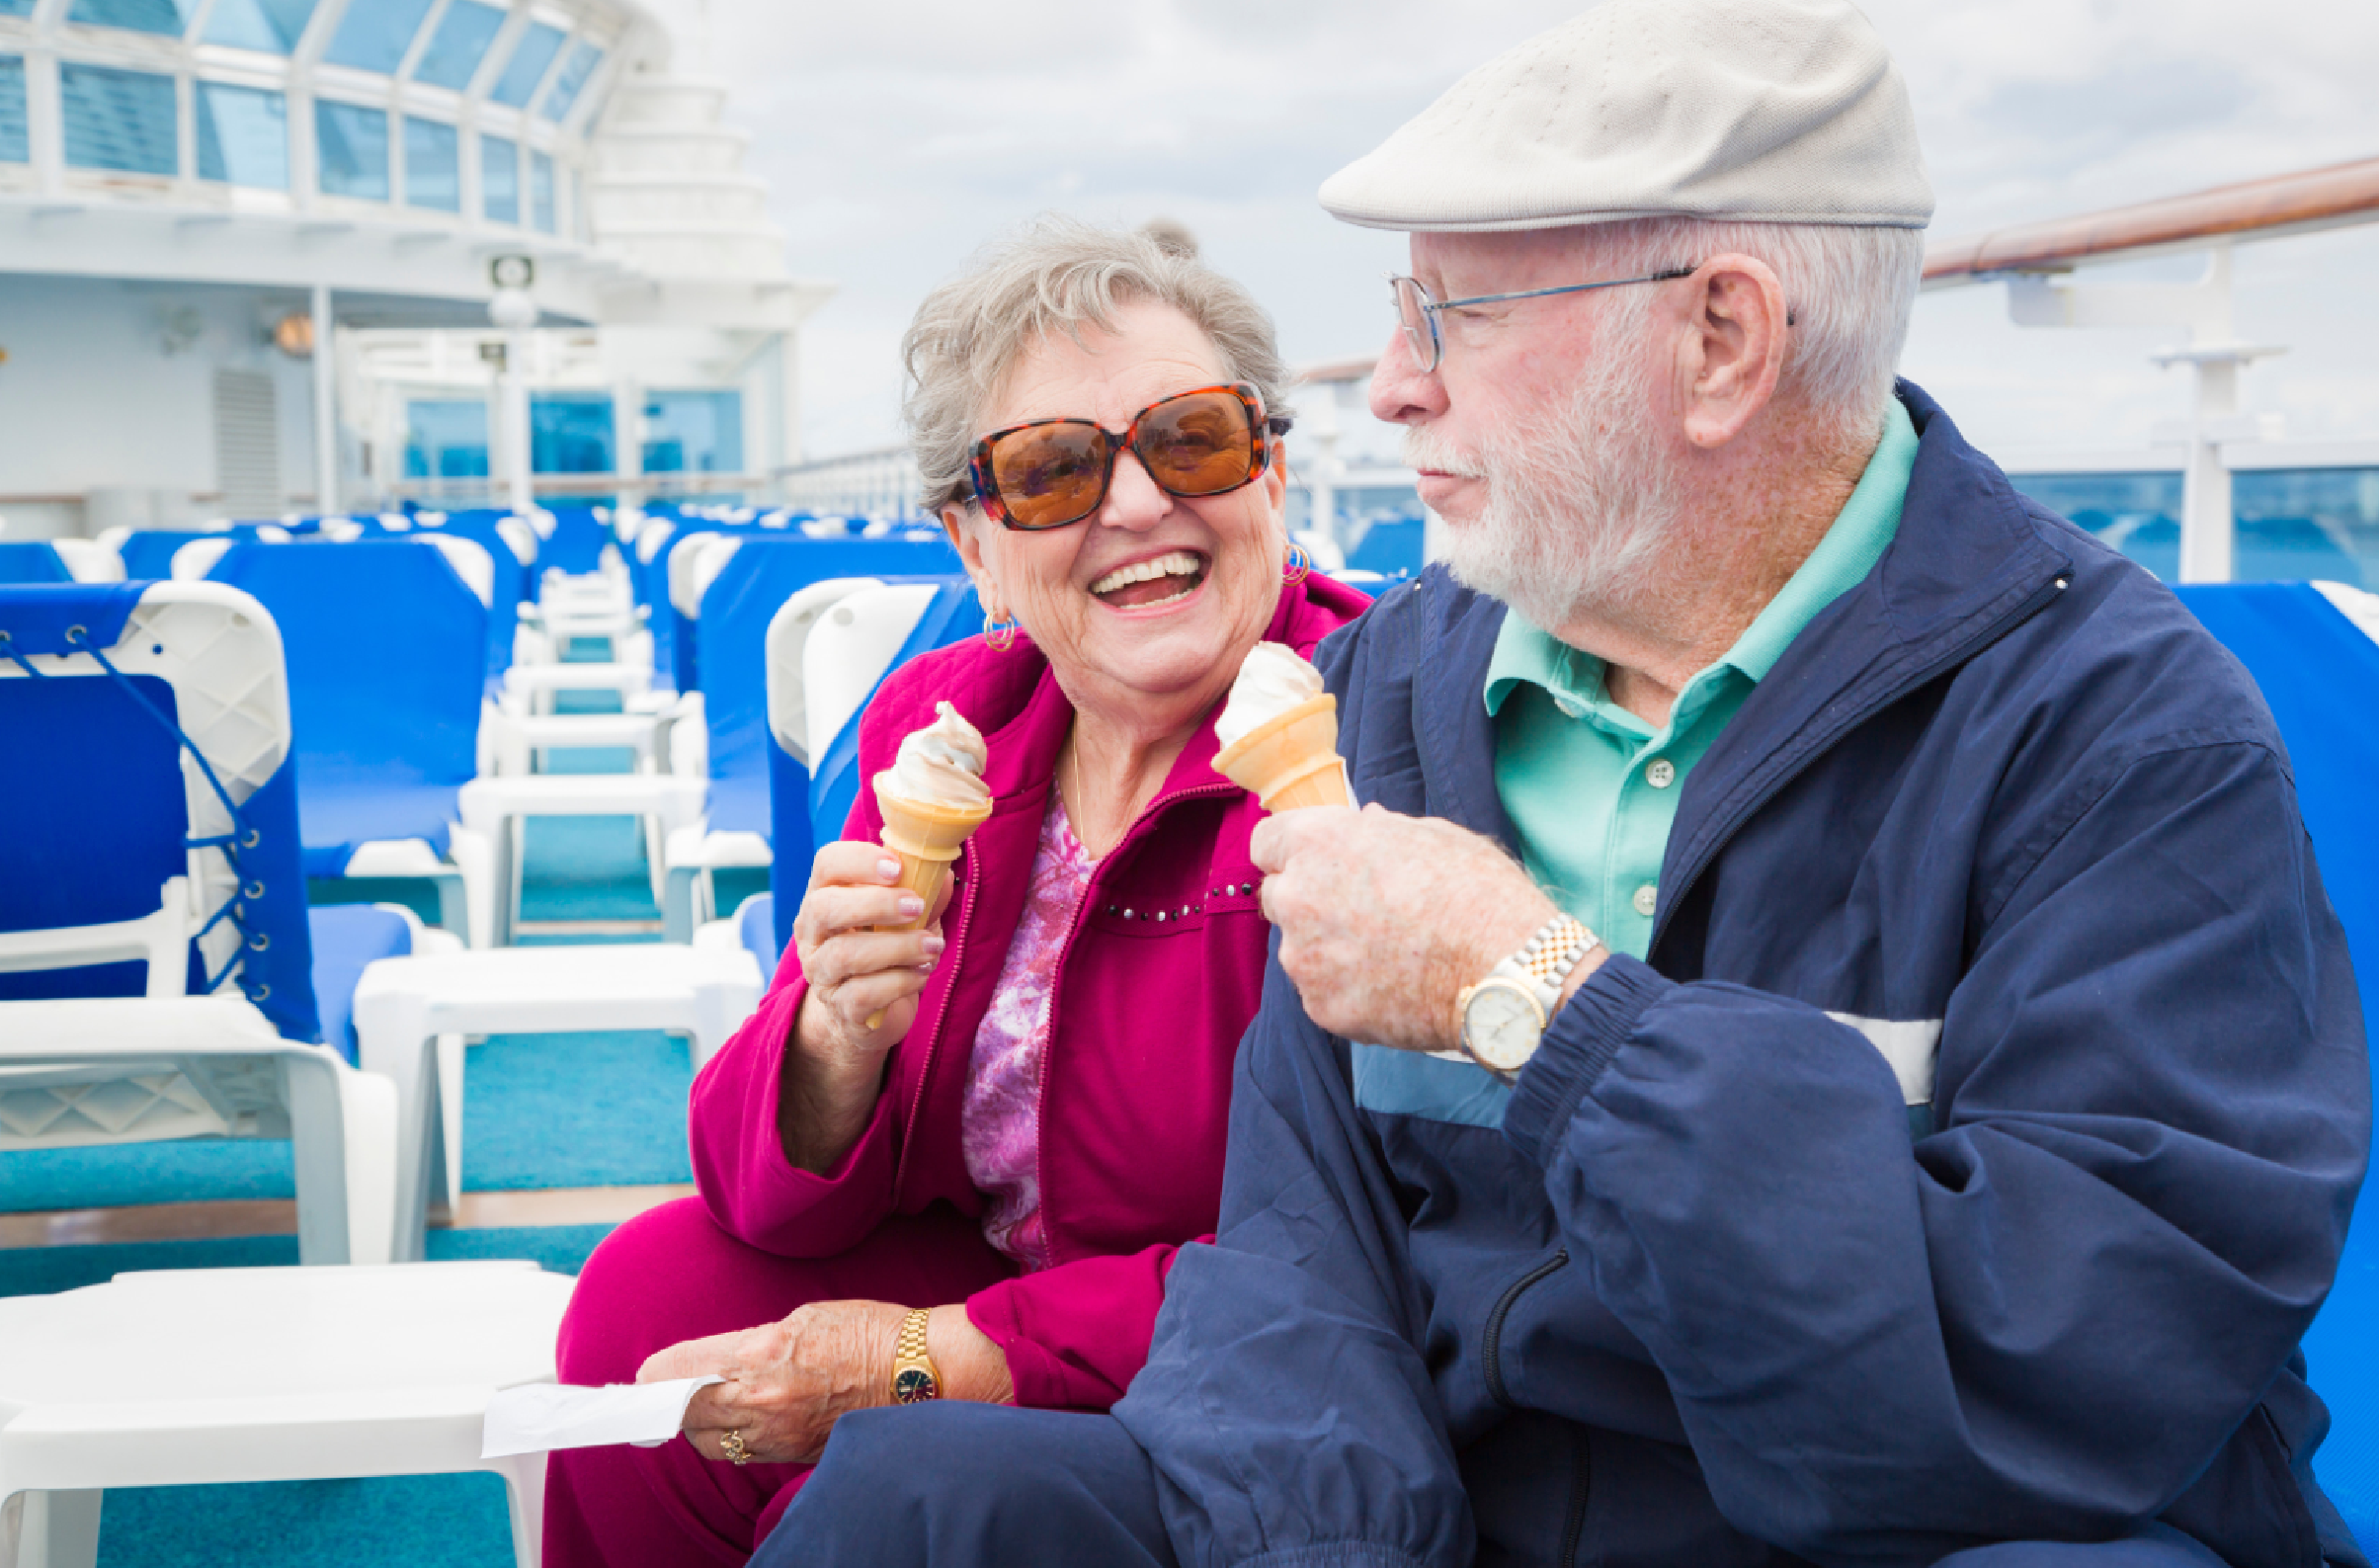 Practical Tips for Maintaining Your Independence with Age